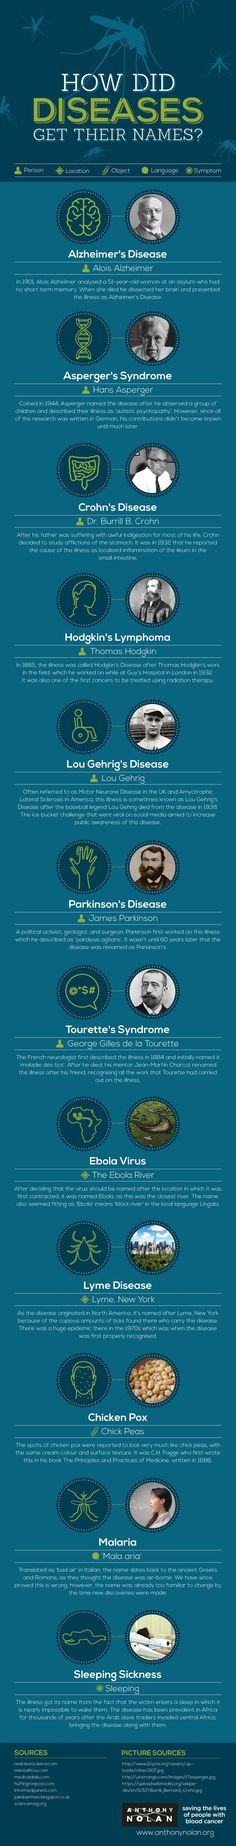 How Did Diseases Get Their Names? #Infographic #Diseases #History